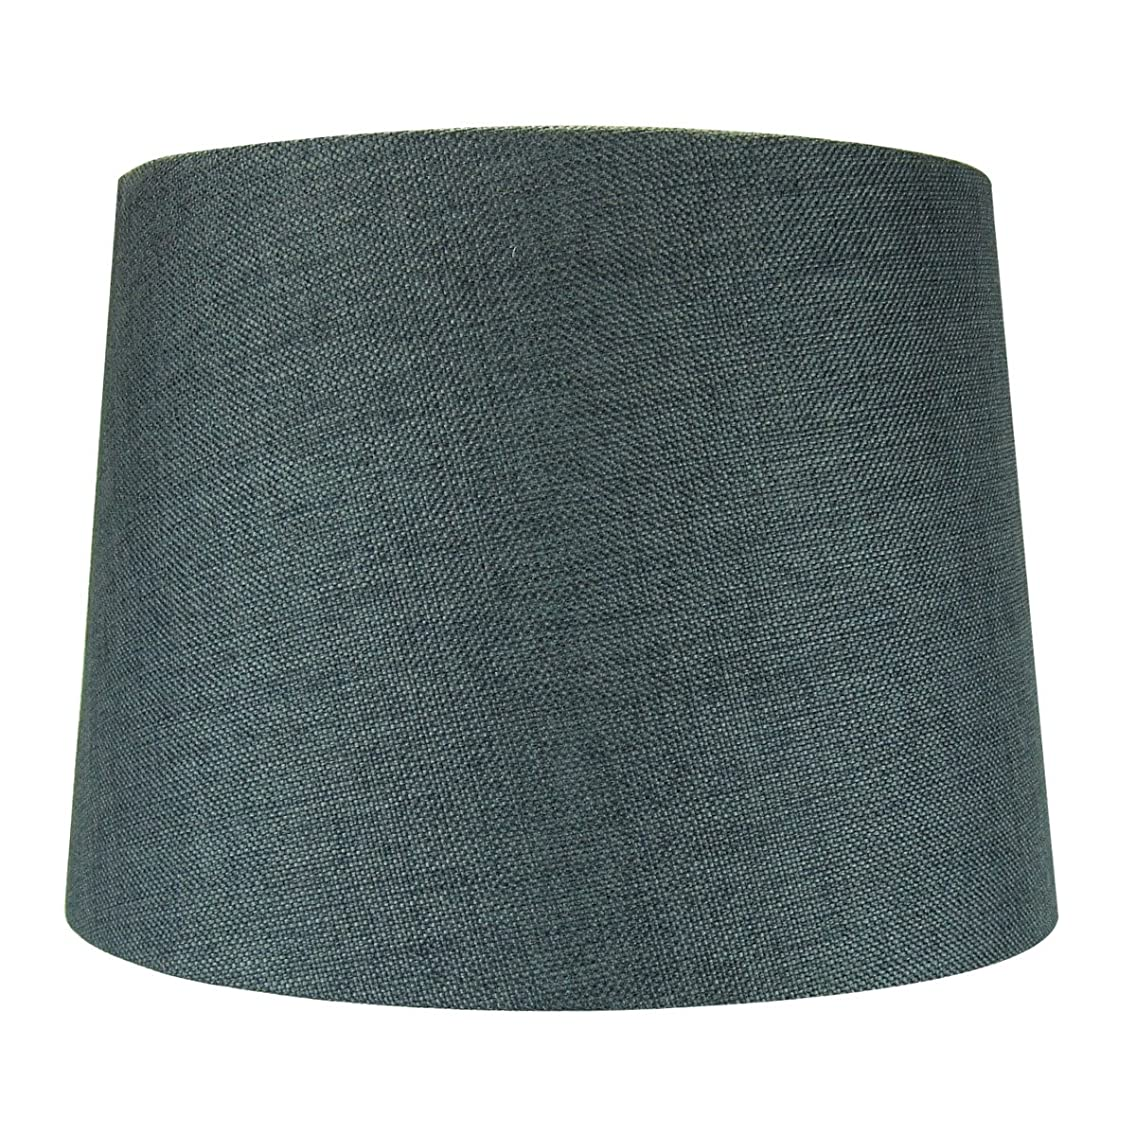 12x14x10 Hardback Drum Lamp Lampshade Granite Grey with Brass Spider fitter By Home Concept - Perfect for table and Desk lamps - Medium, Grey